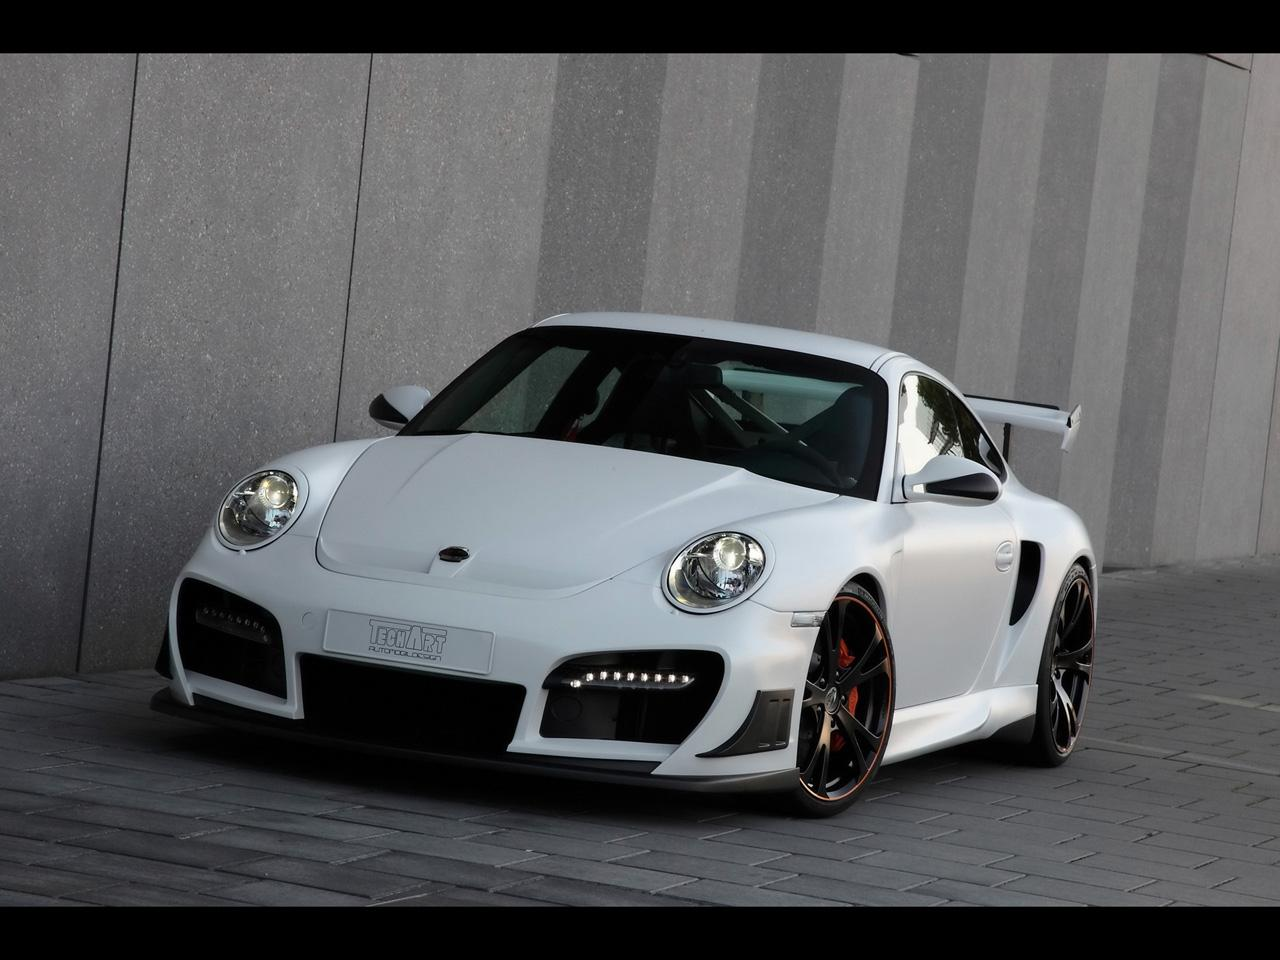 2010 TechArt GT Street RS based on Porsche 911 GT2